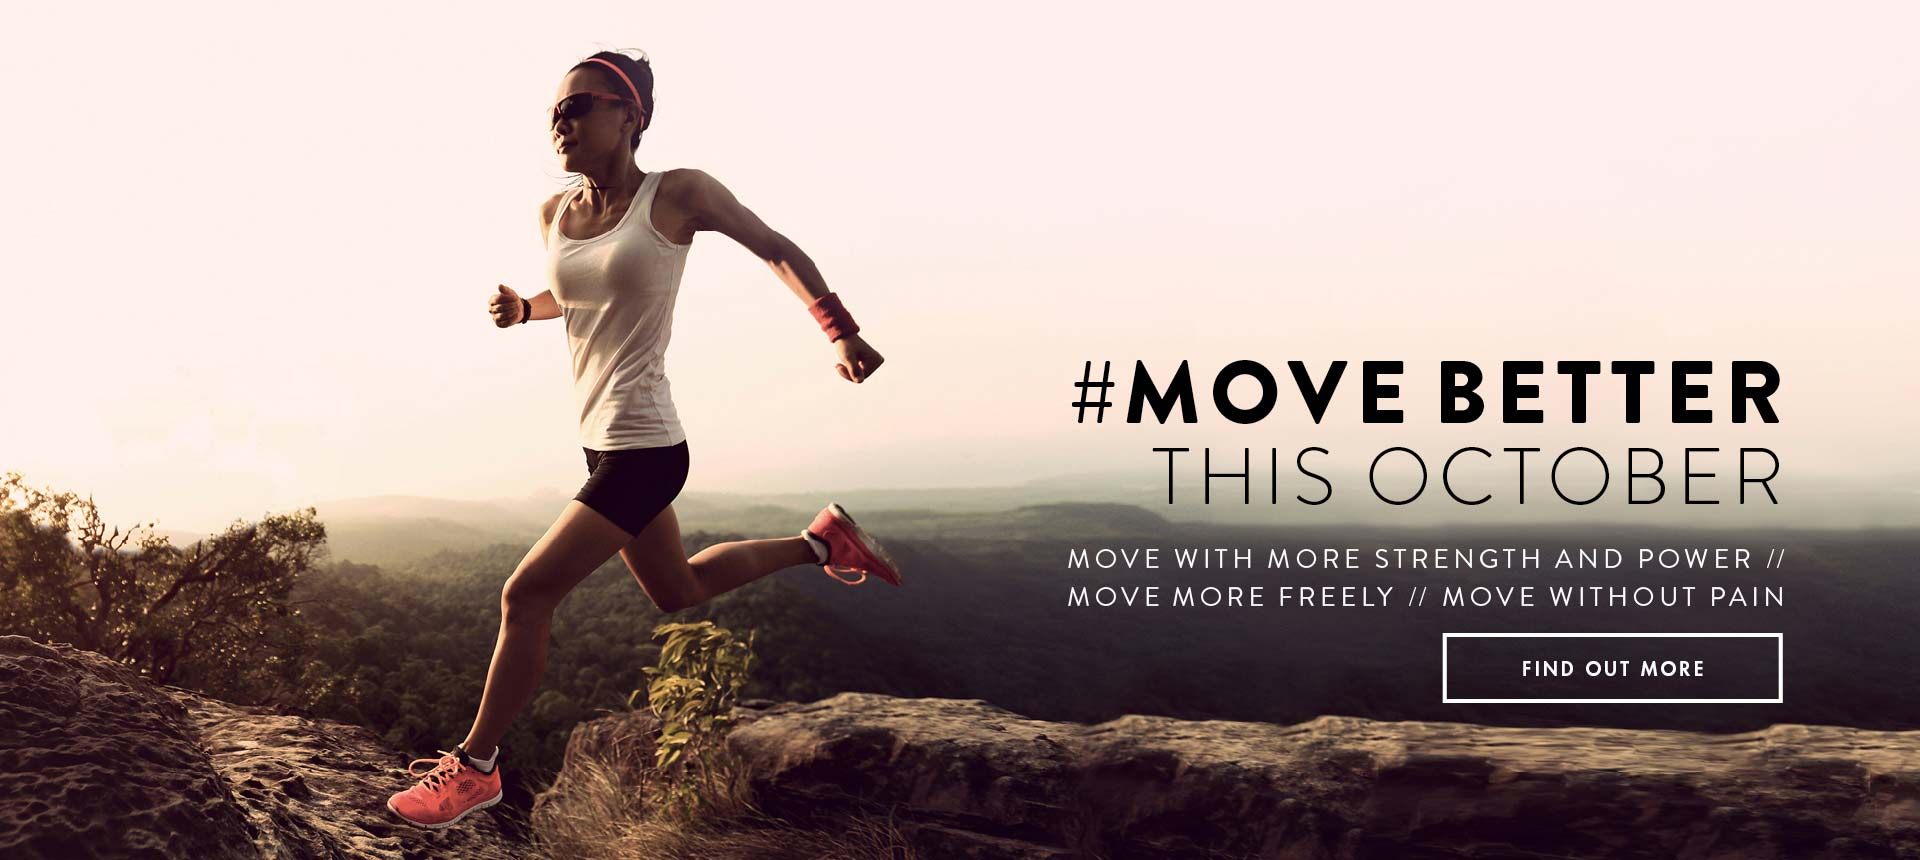 Move Better October